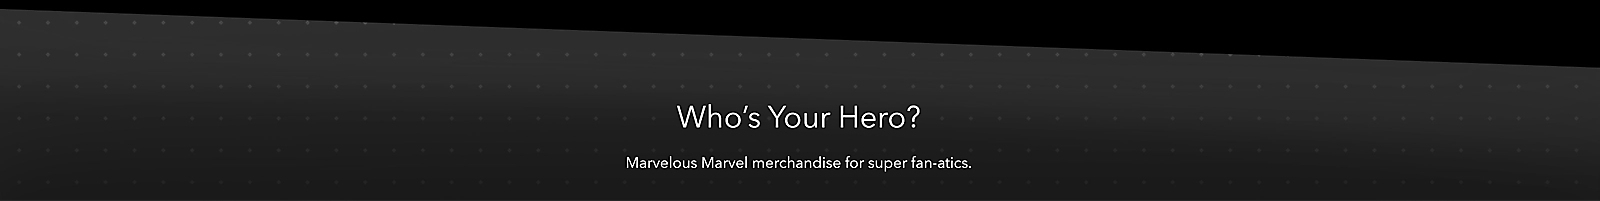 Who's Your Hero? Marvelous Marvel merchandise for super fan-atics